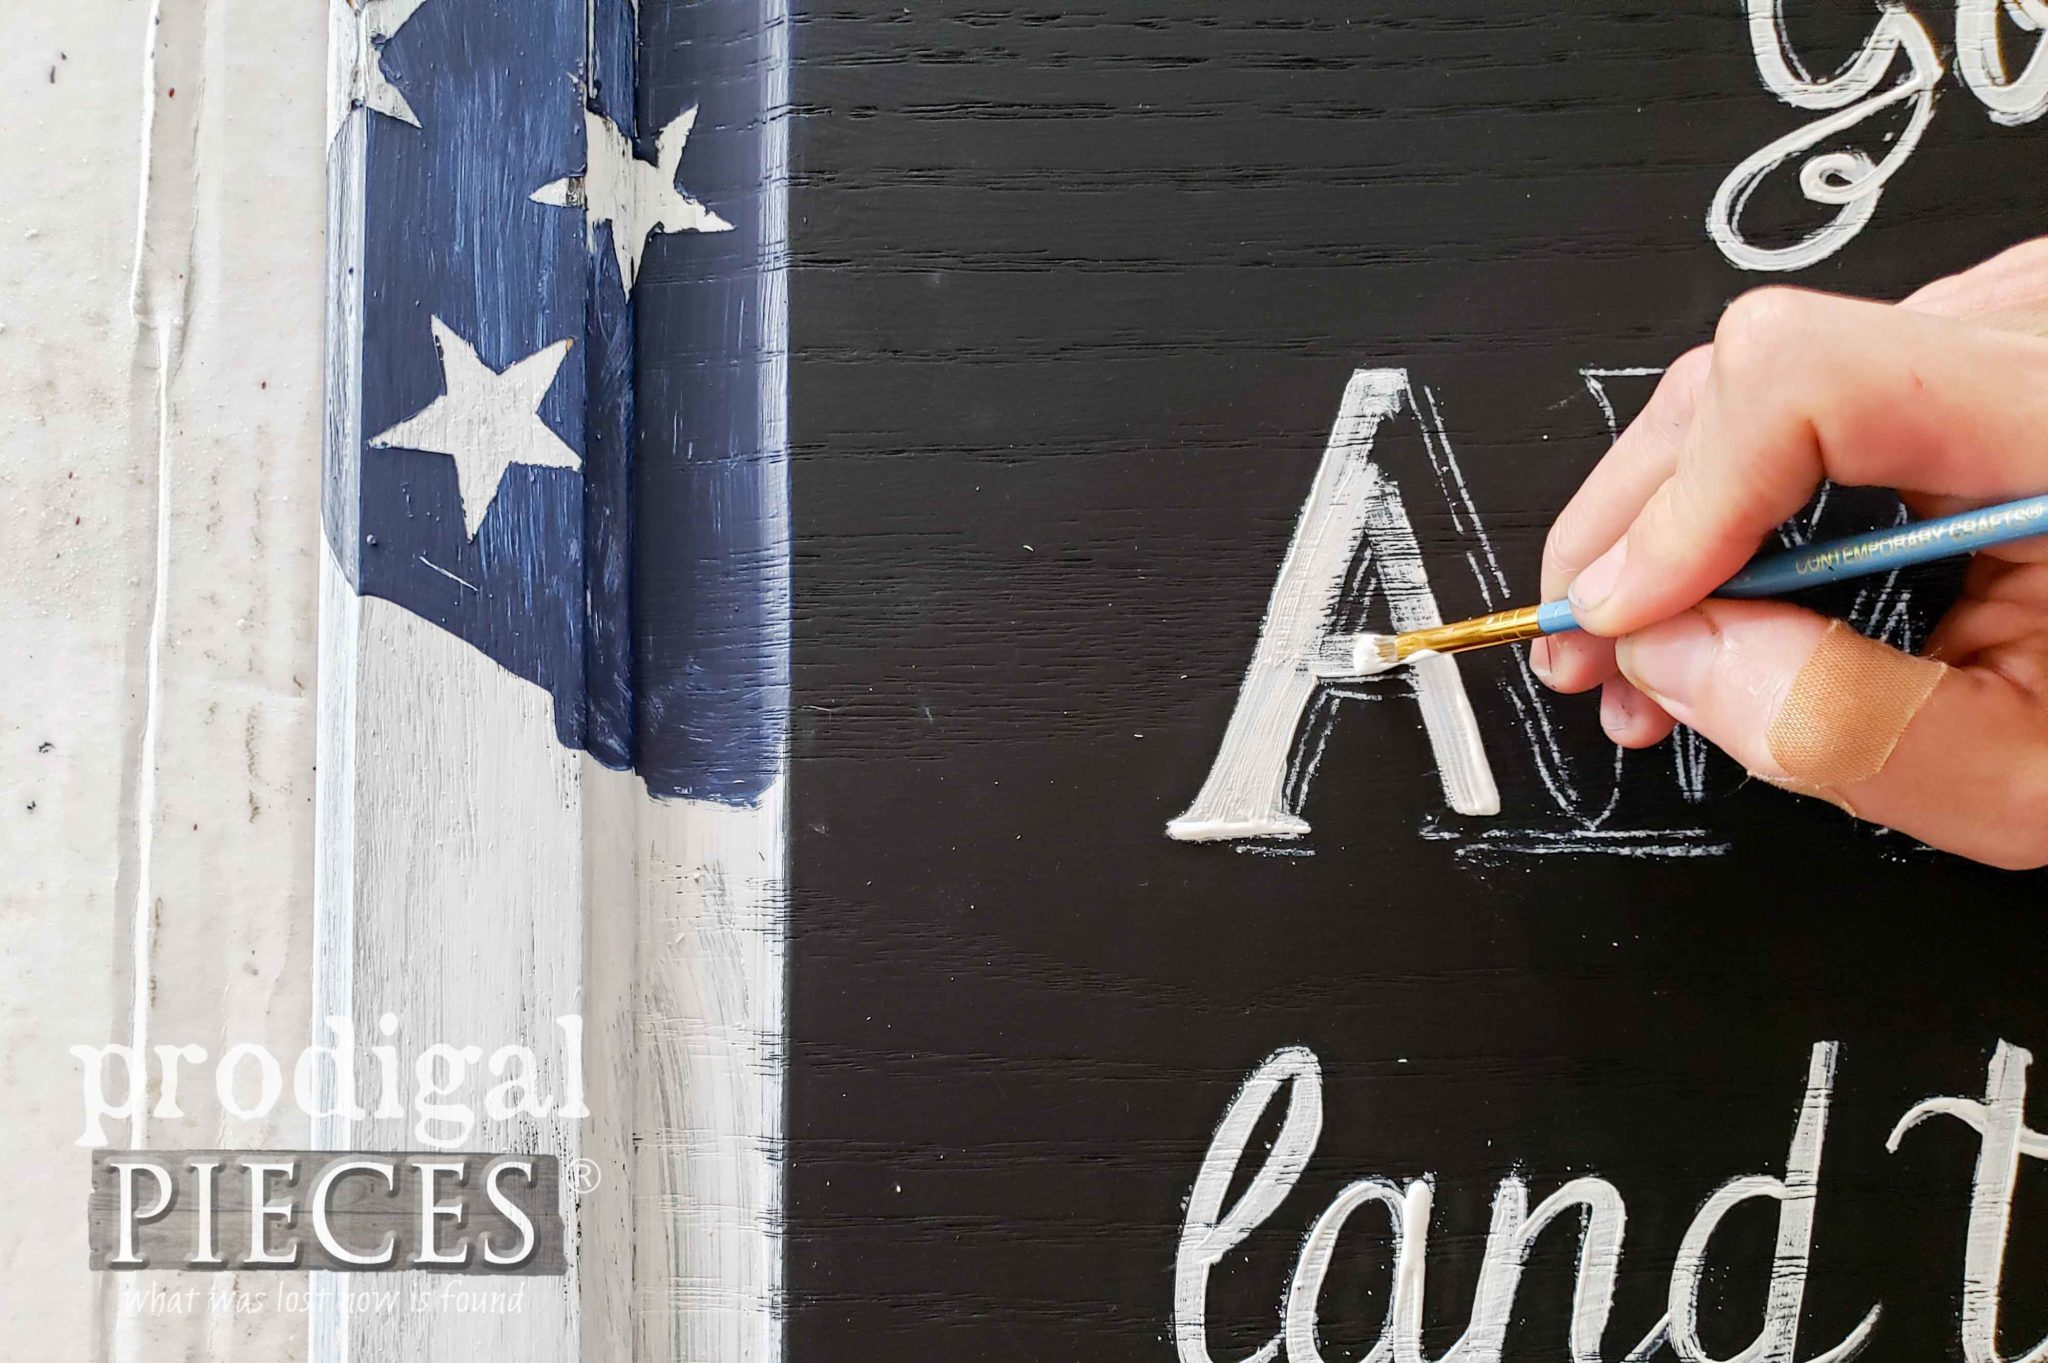 Hand-Painting Typography on DIY 4th of July Sign by Larissa of Prodigal Pieces | prodigalpieces.com #prodigalpieces #diy #home #4thofjuly #homedecor